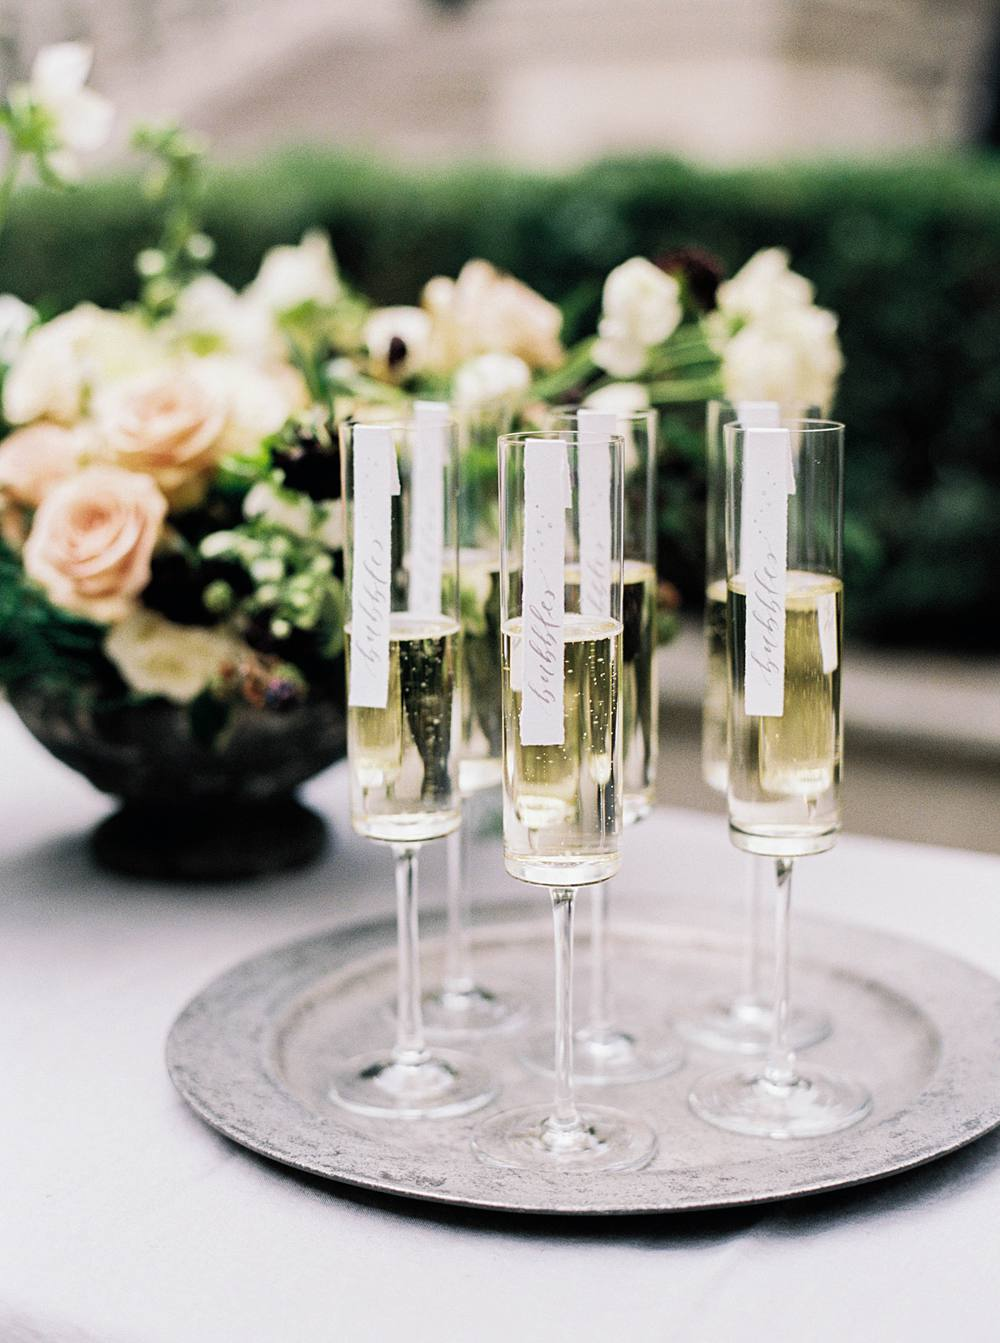 Close-up of champagne flutes with custom name tags hanging from rim.